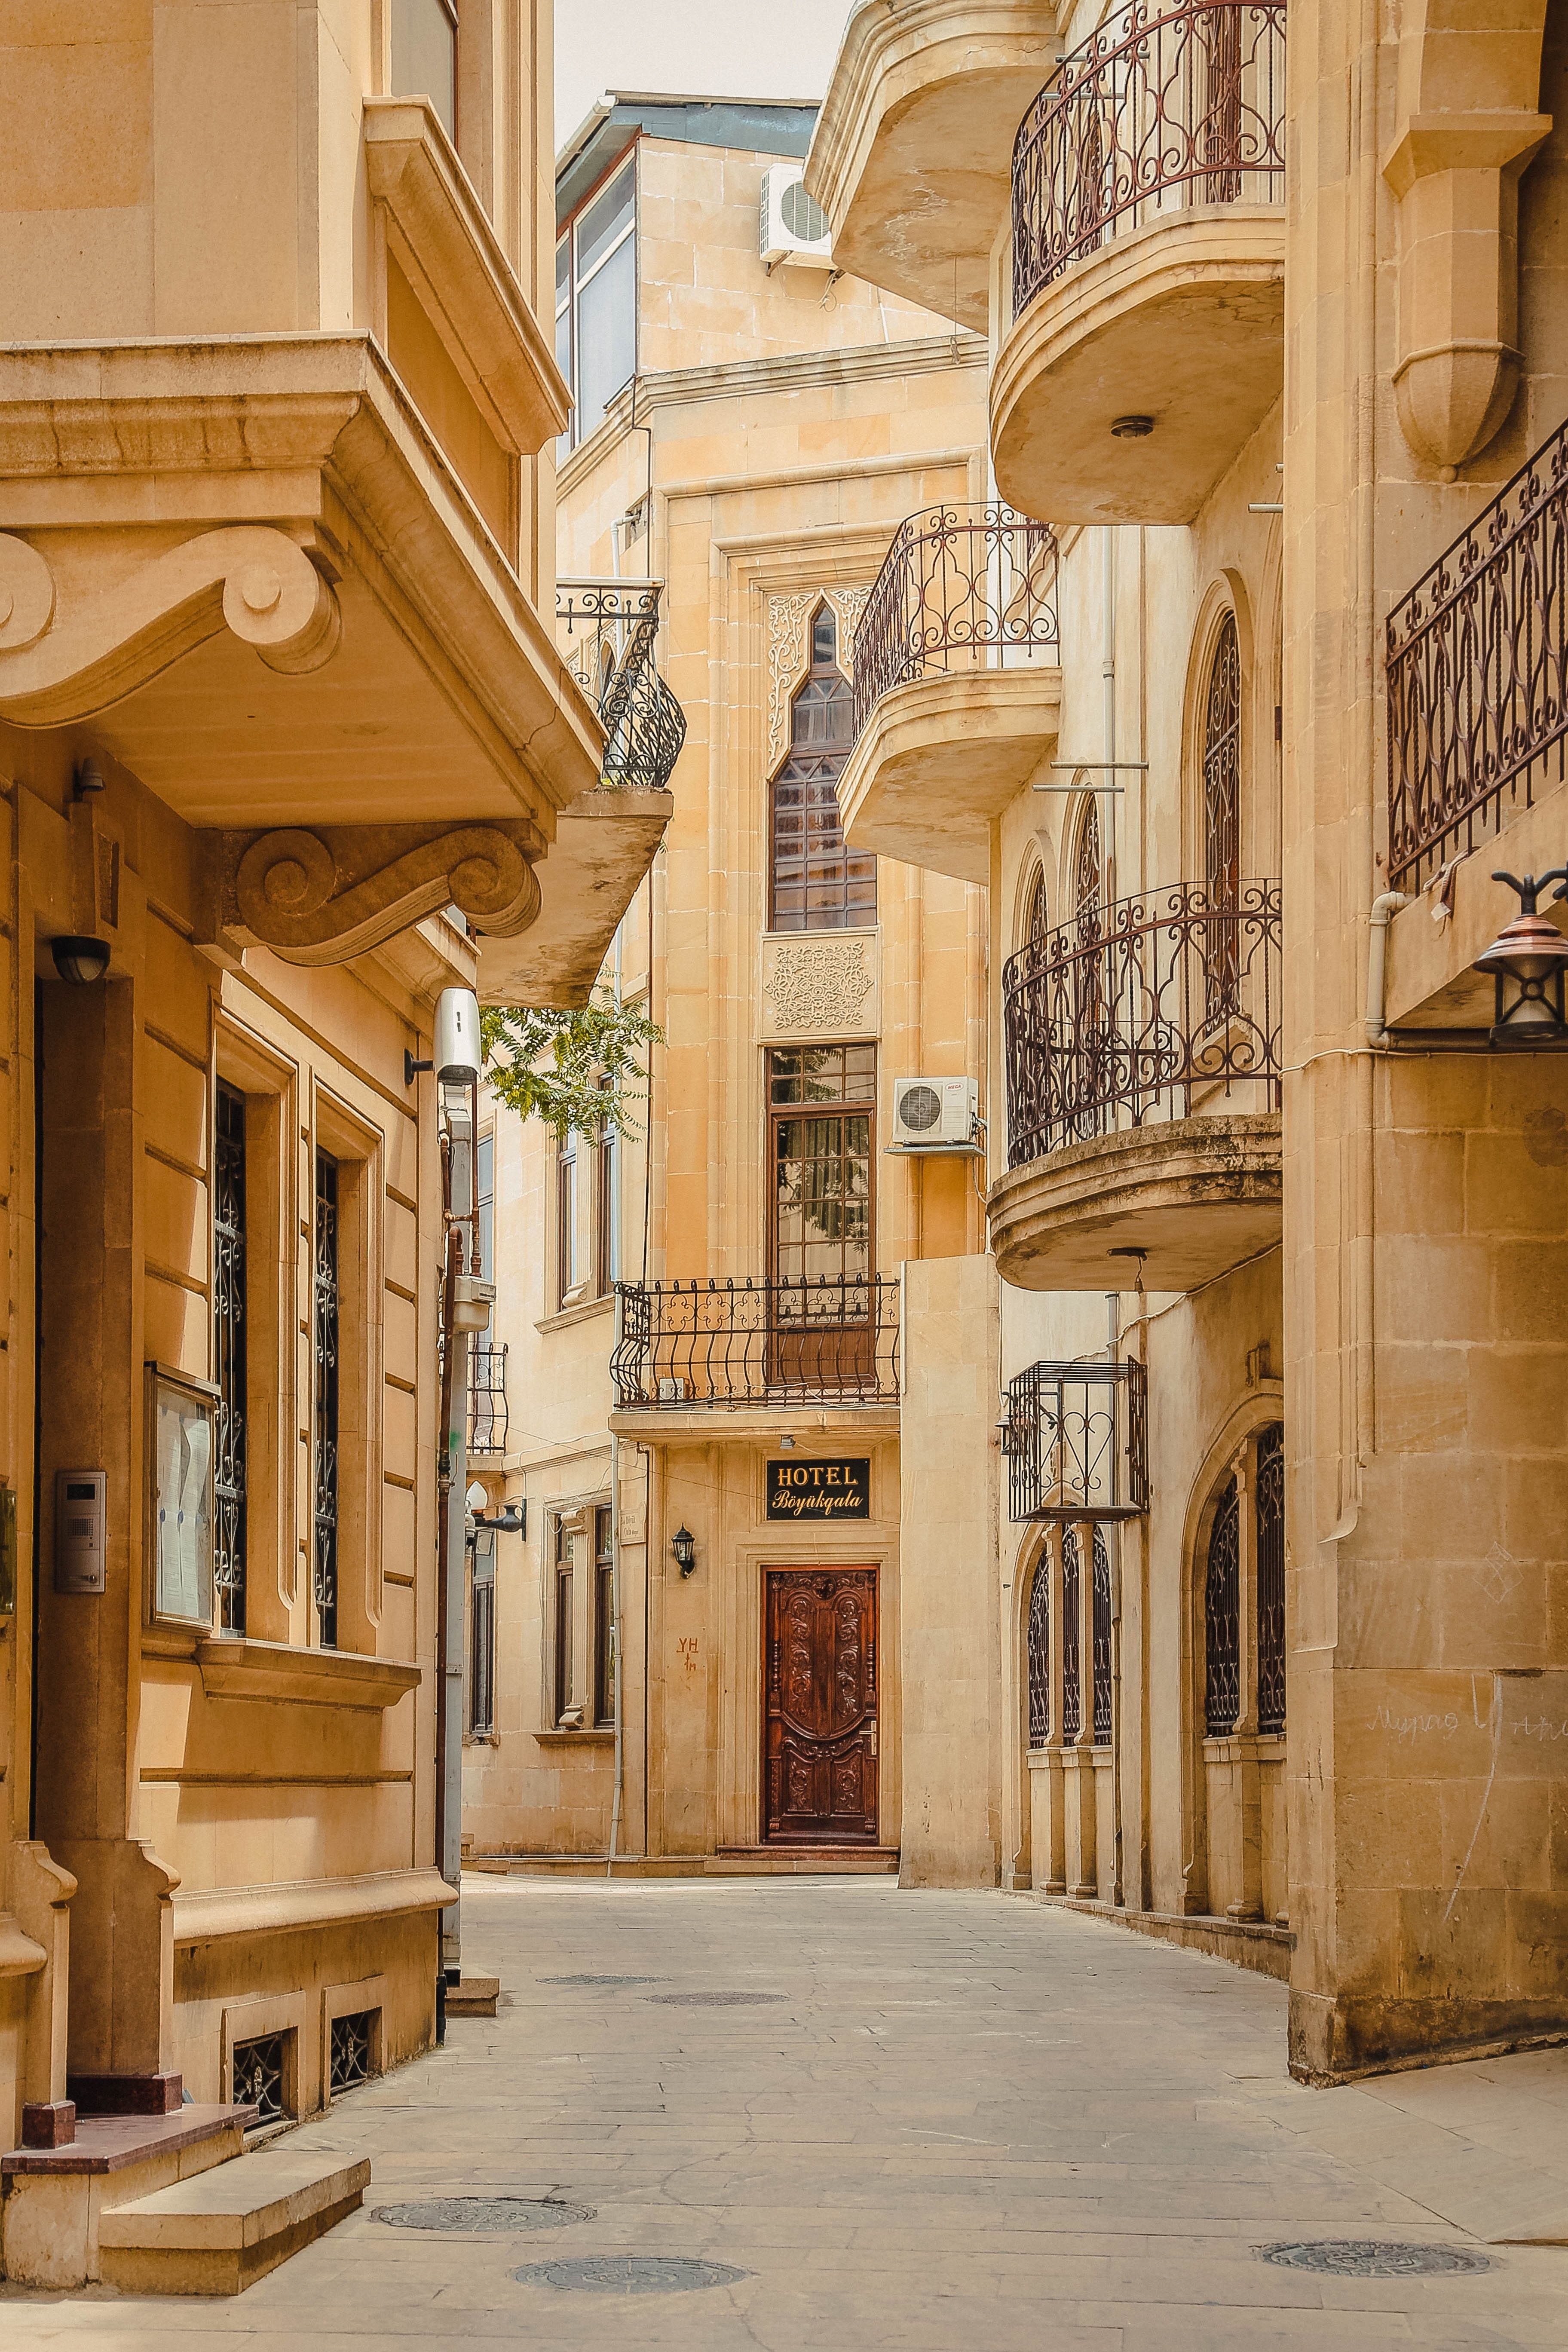 Alleyway Surrounded By Houses Ancient Antique Arabic Architecture Arabic Architecture Art Azerbaija Primitive Homes Architecture Contemporary Home Decor